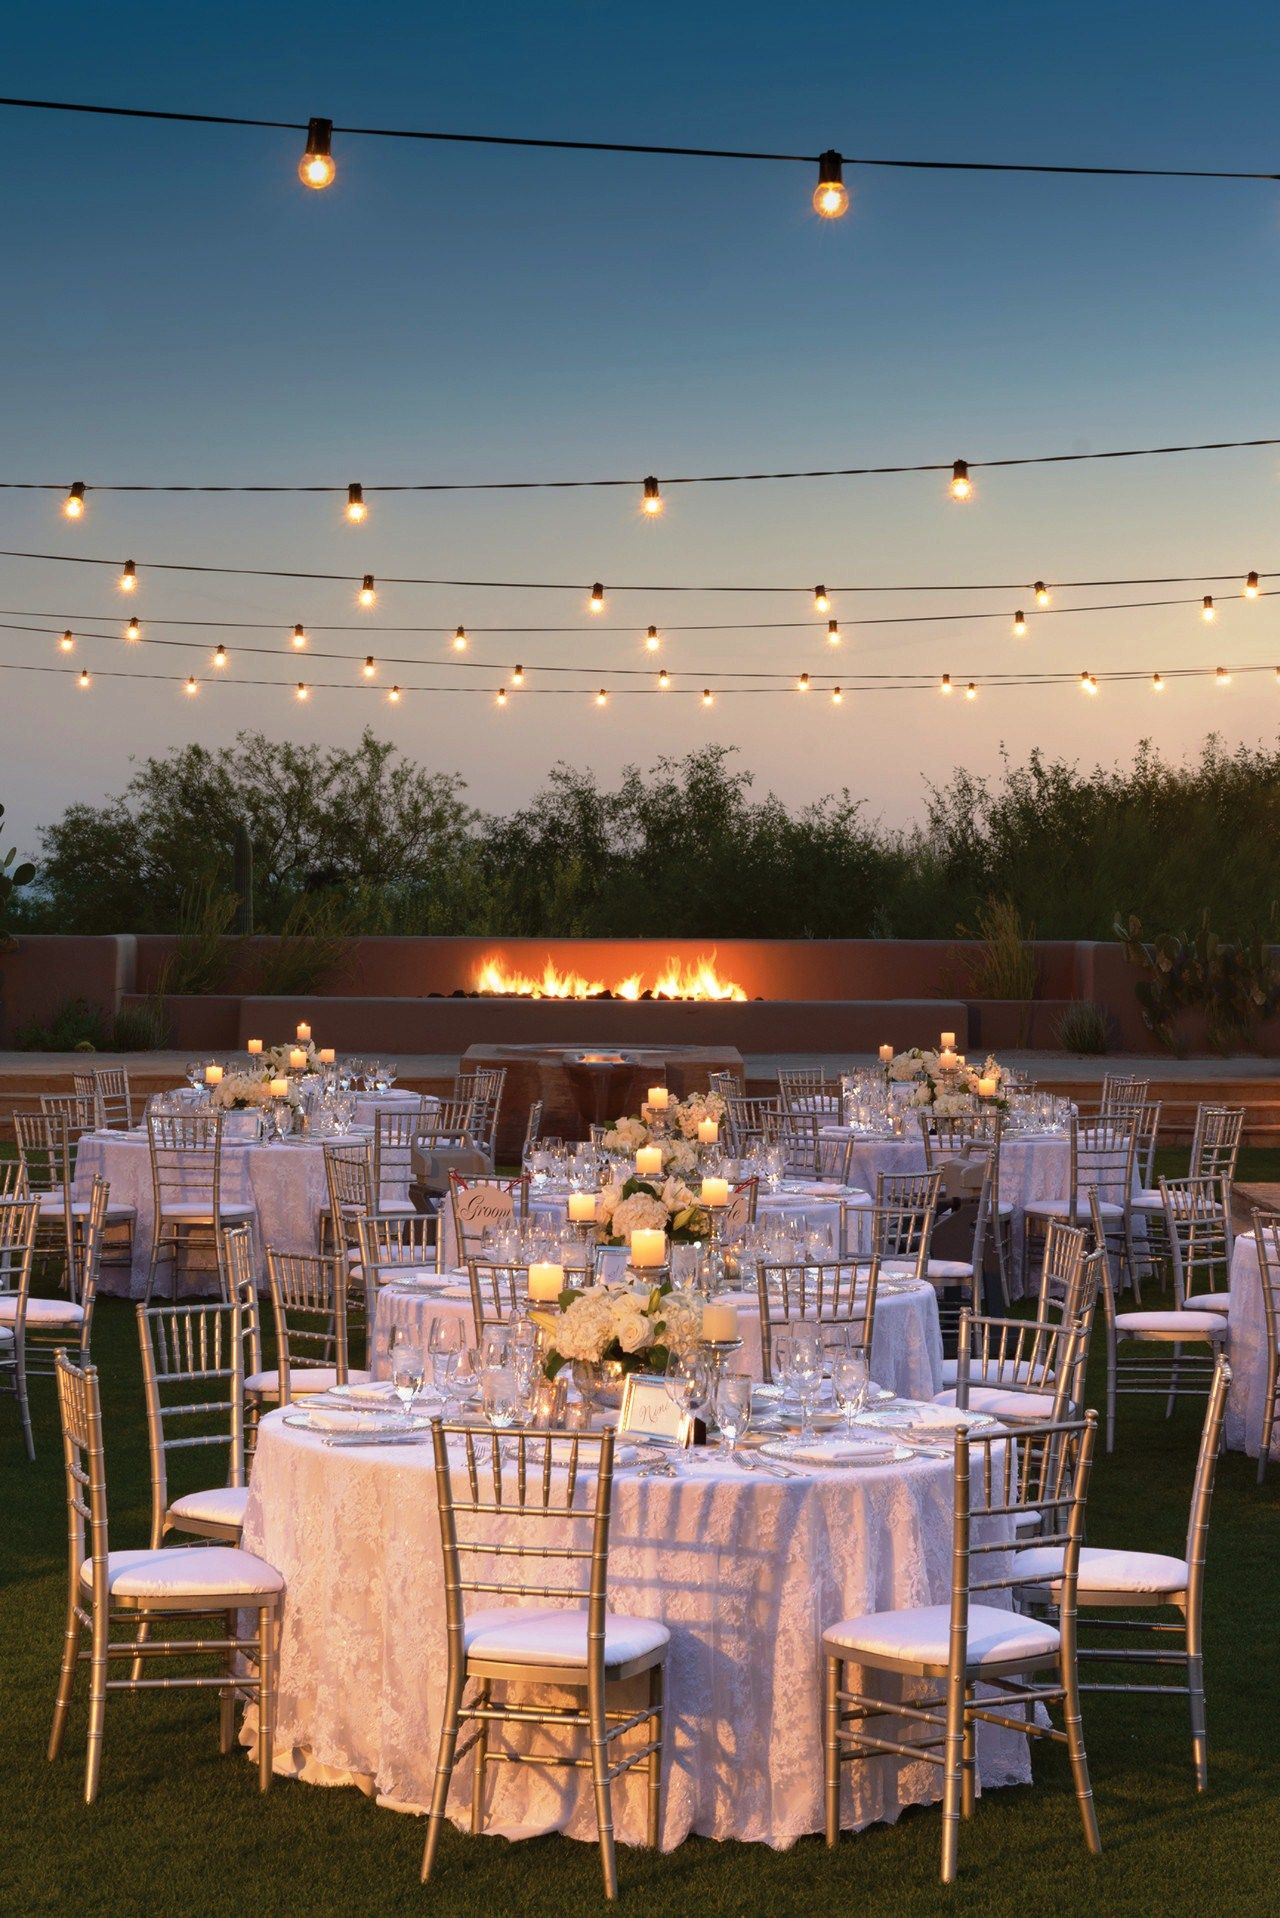 There S Something So Magical About A Sonoran Desert Night Pictured Four Seasons Resort